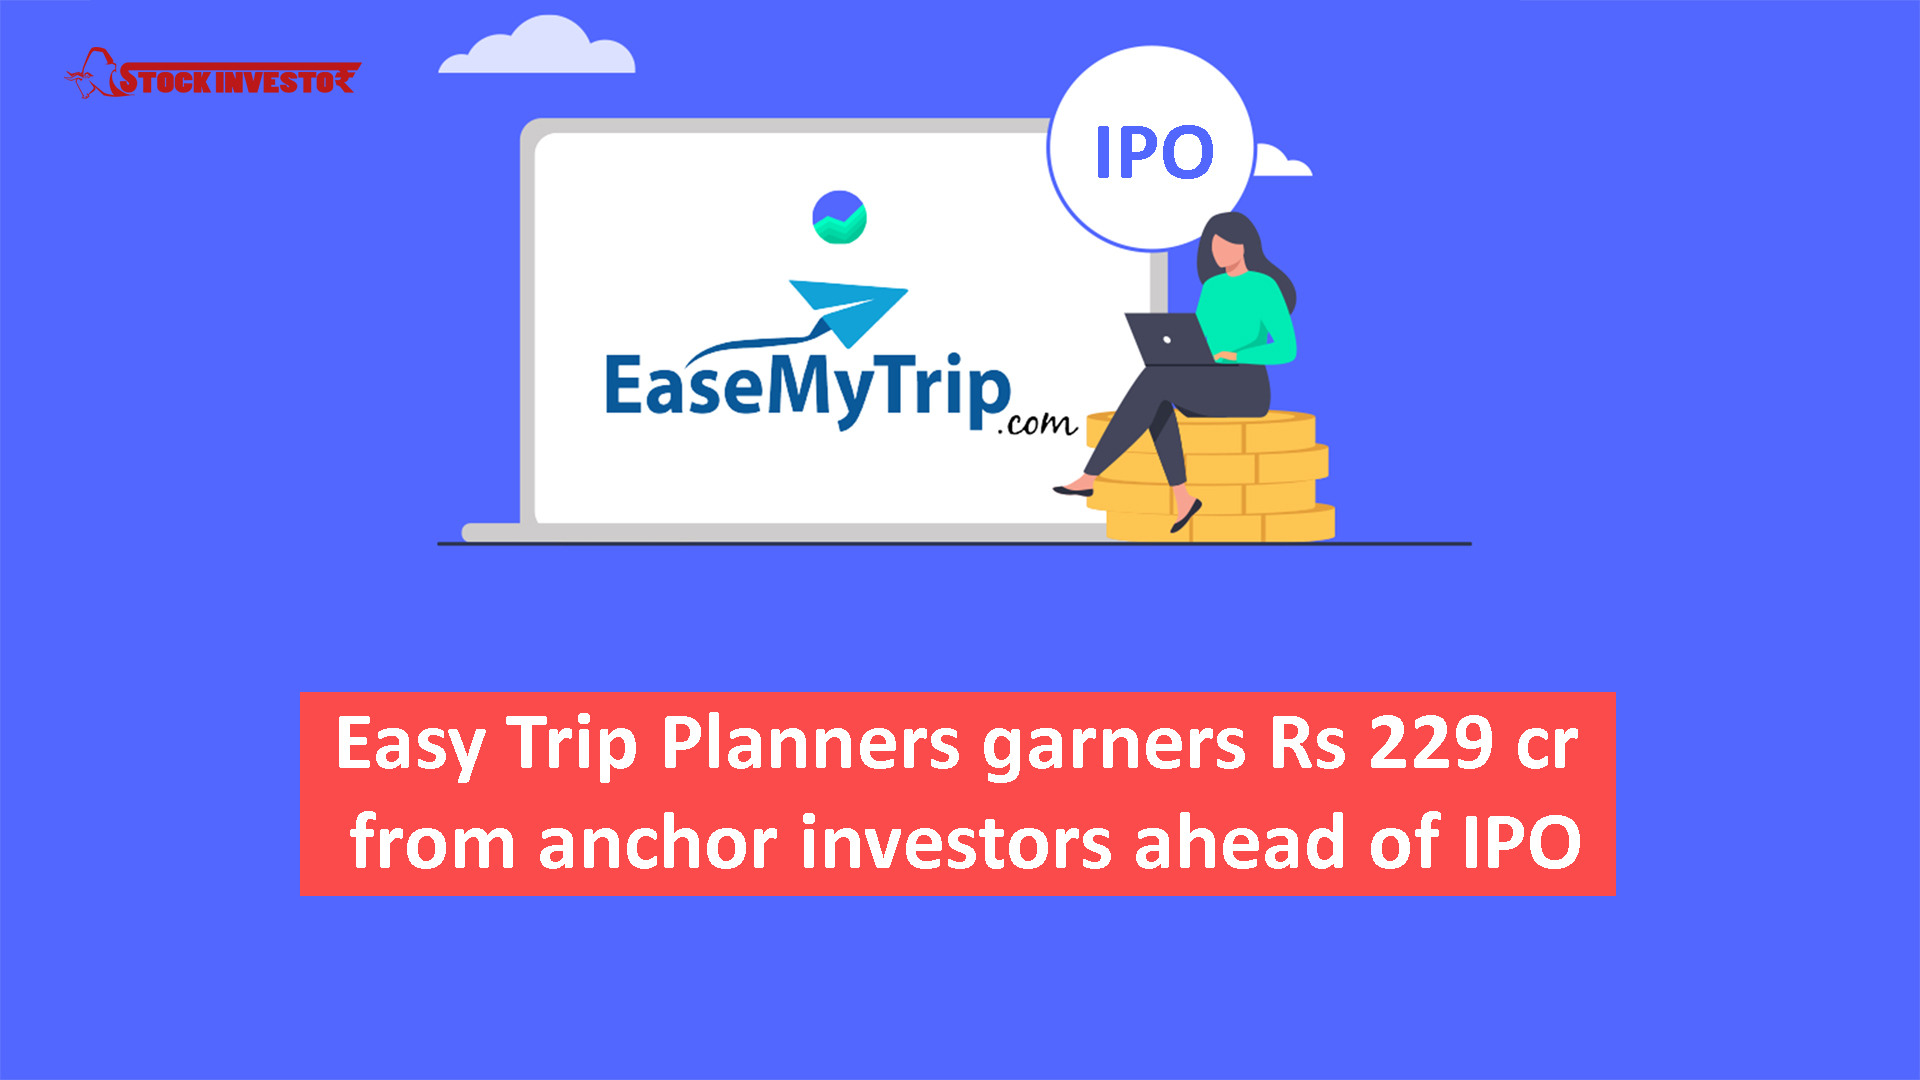 Easy Trip Planners garners Rs 229 cr from anchor investors ahead of IPO;